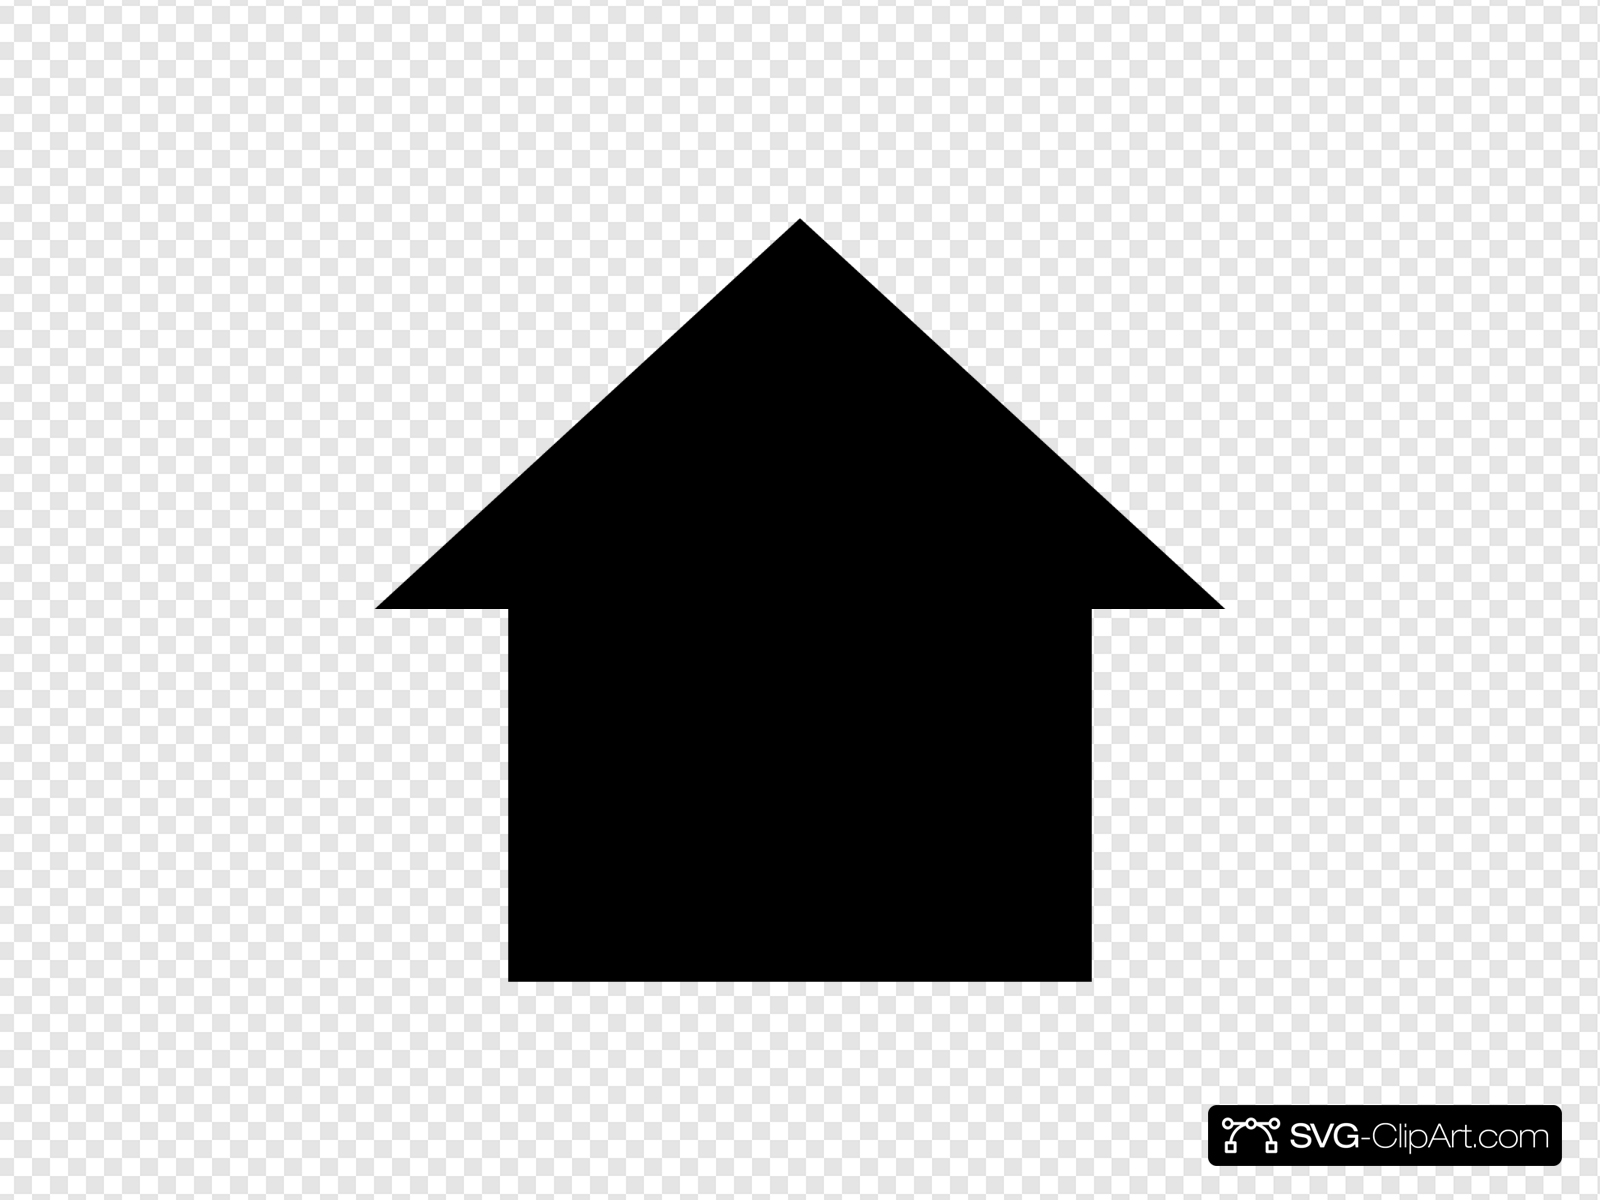 Home Icon Clip art, Icon and SVG.